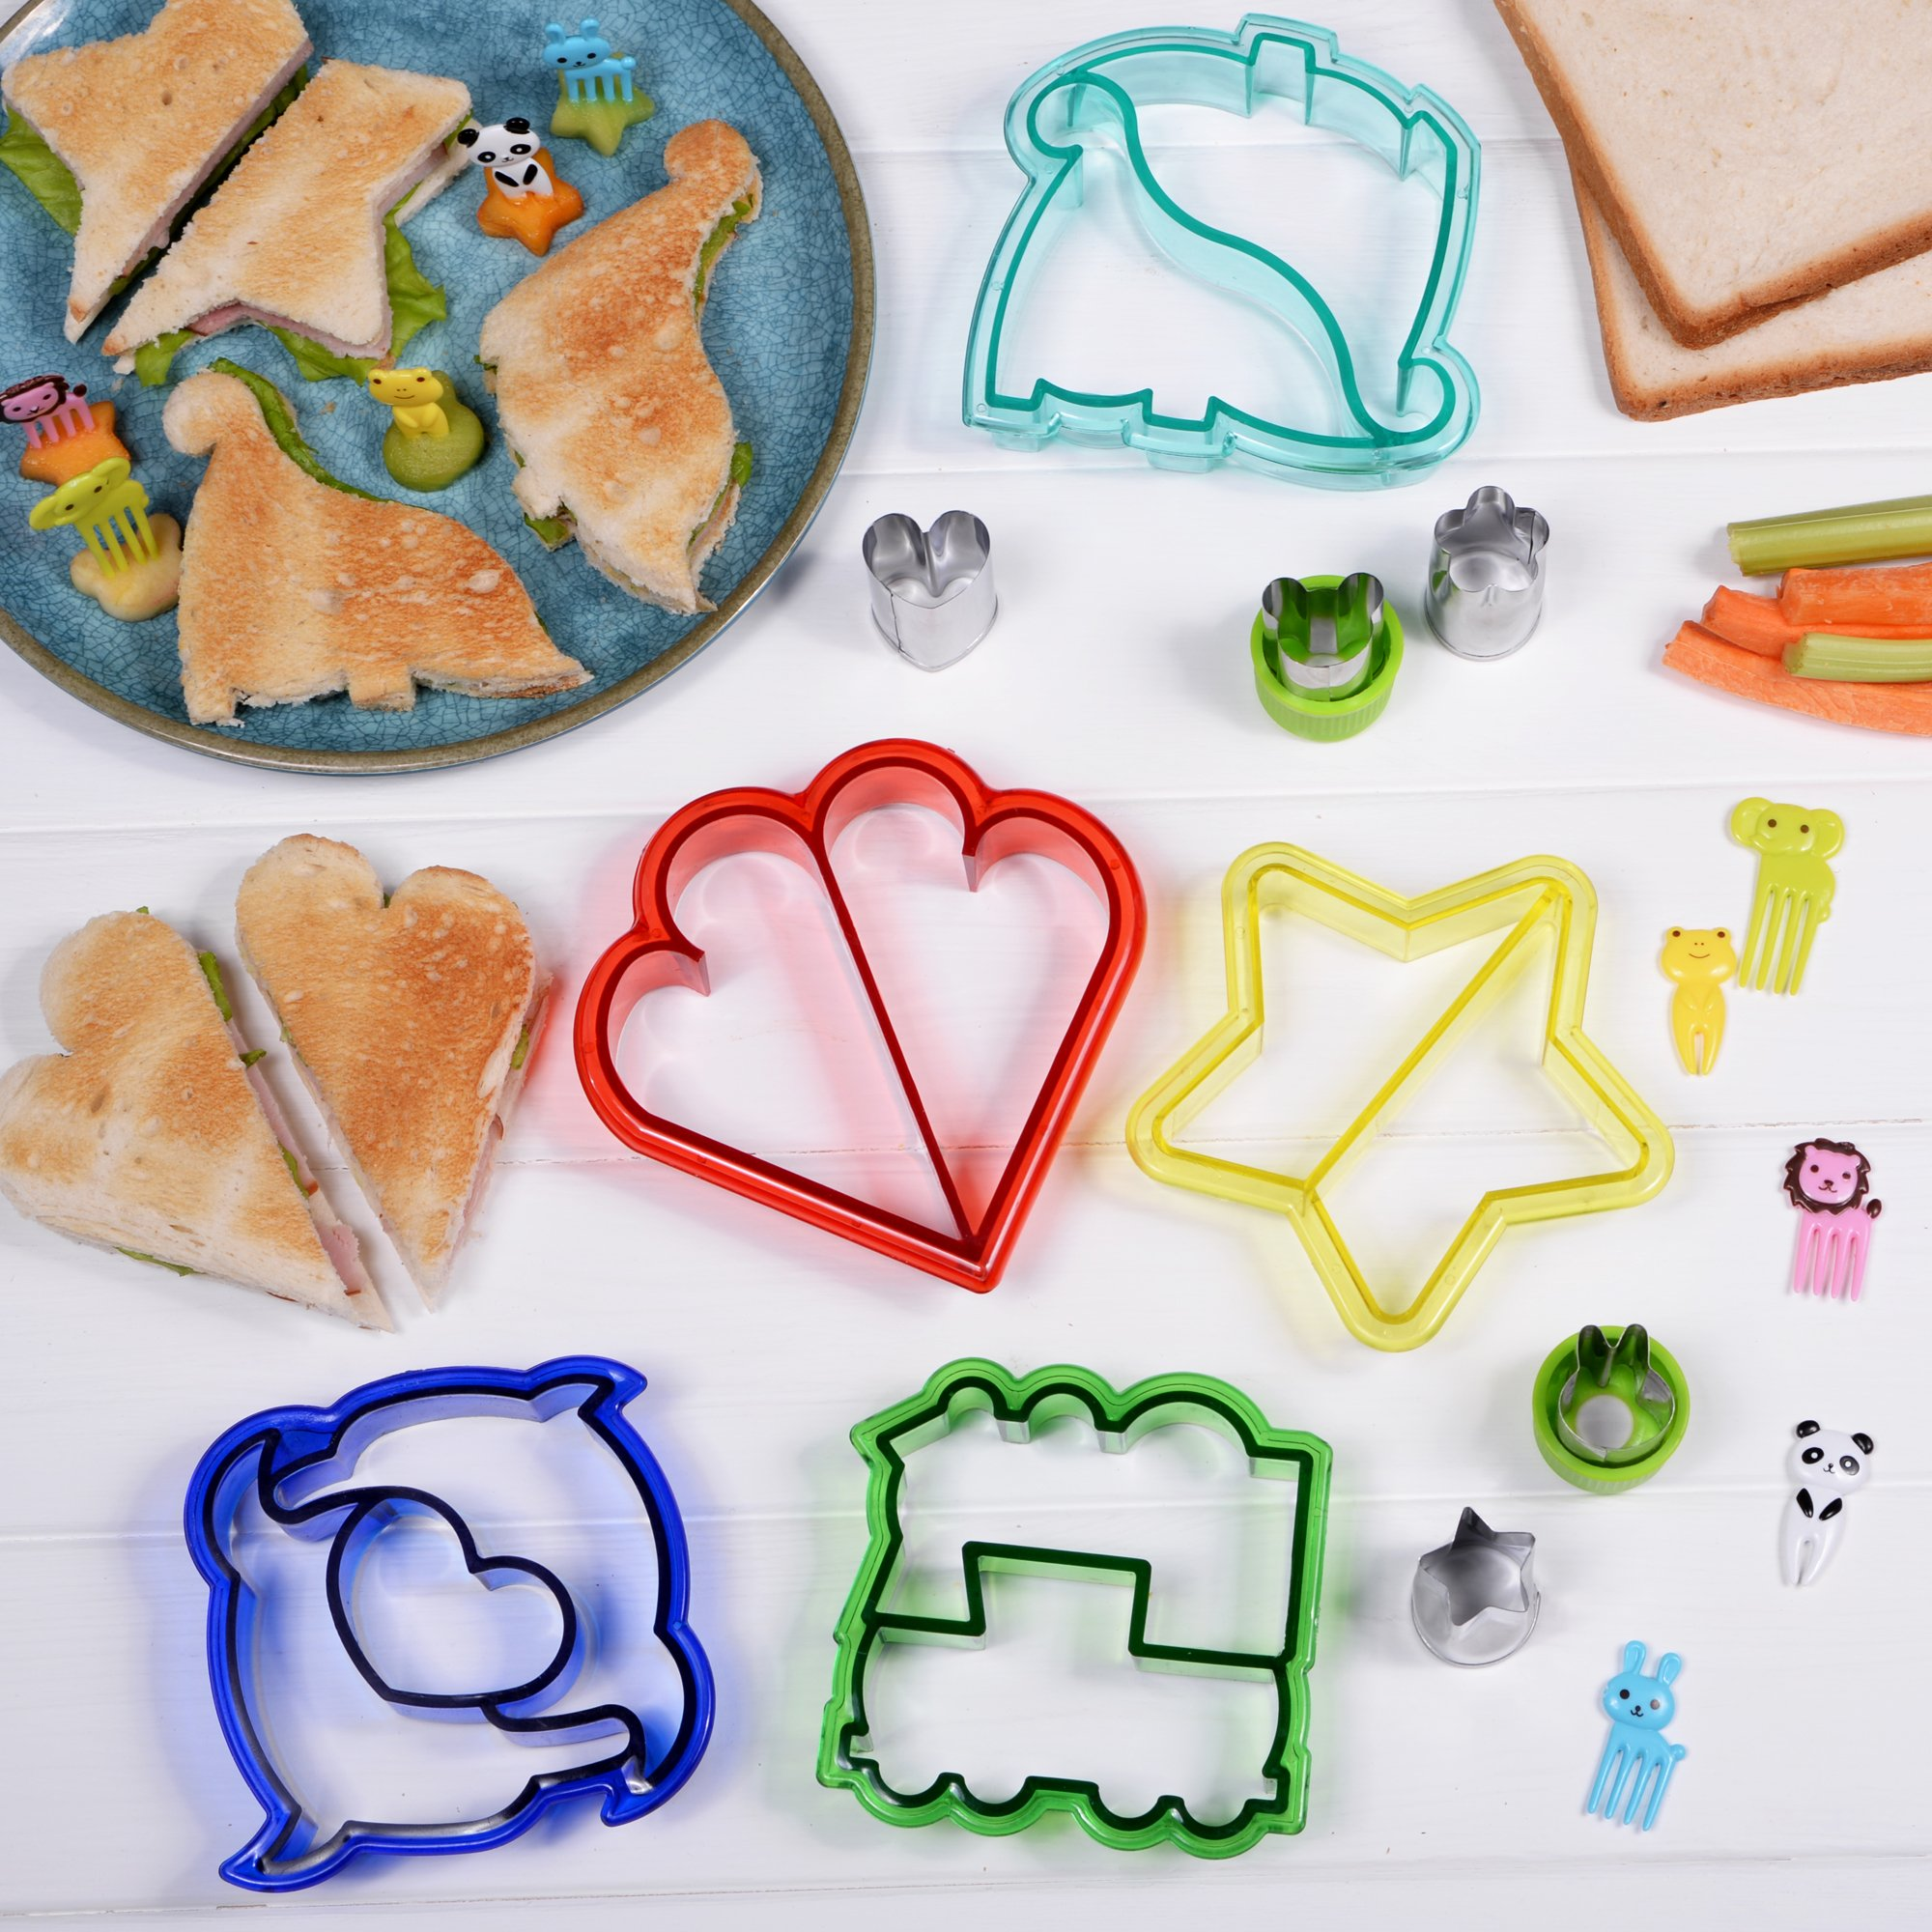 [20-Piece Set] Sandwich Cutters for Kids - 5 Sandwich Cutter Shapes, 5 Vegetable Cutters and FREE 10 Bento Decorations by GO FRESH (Image #5)